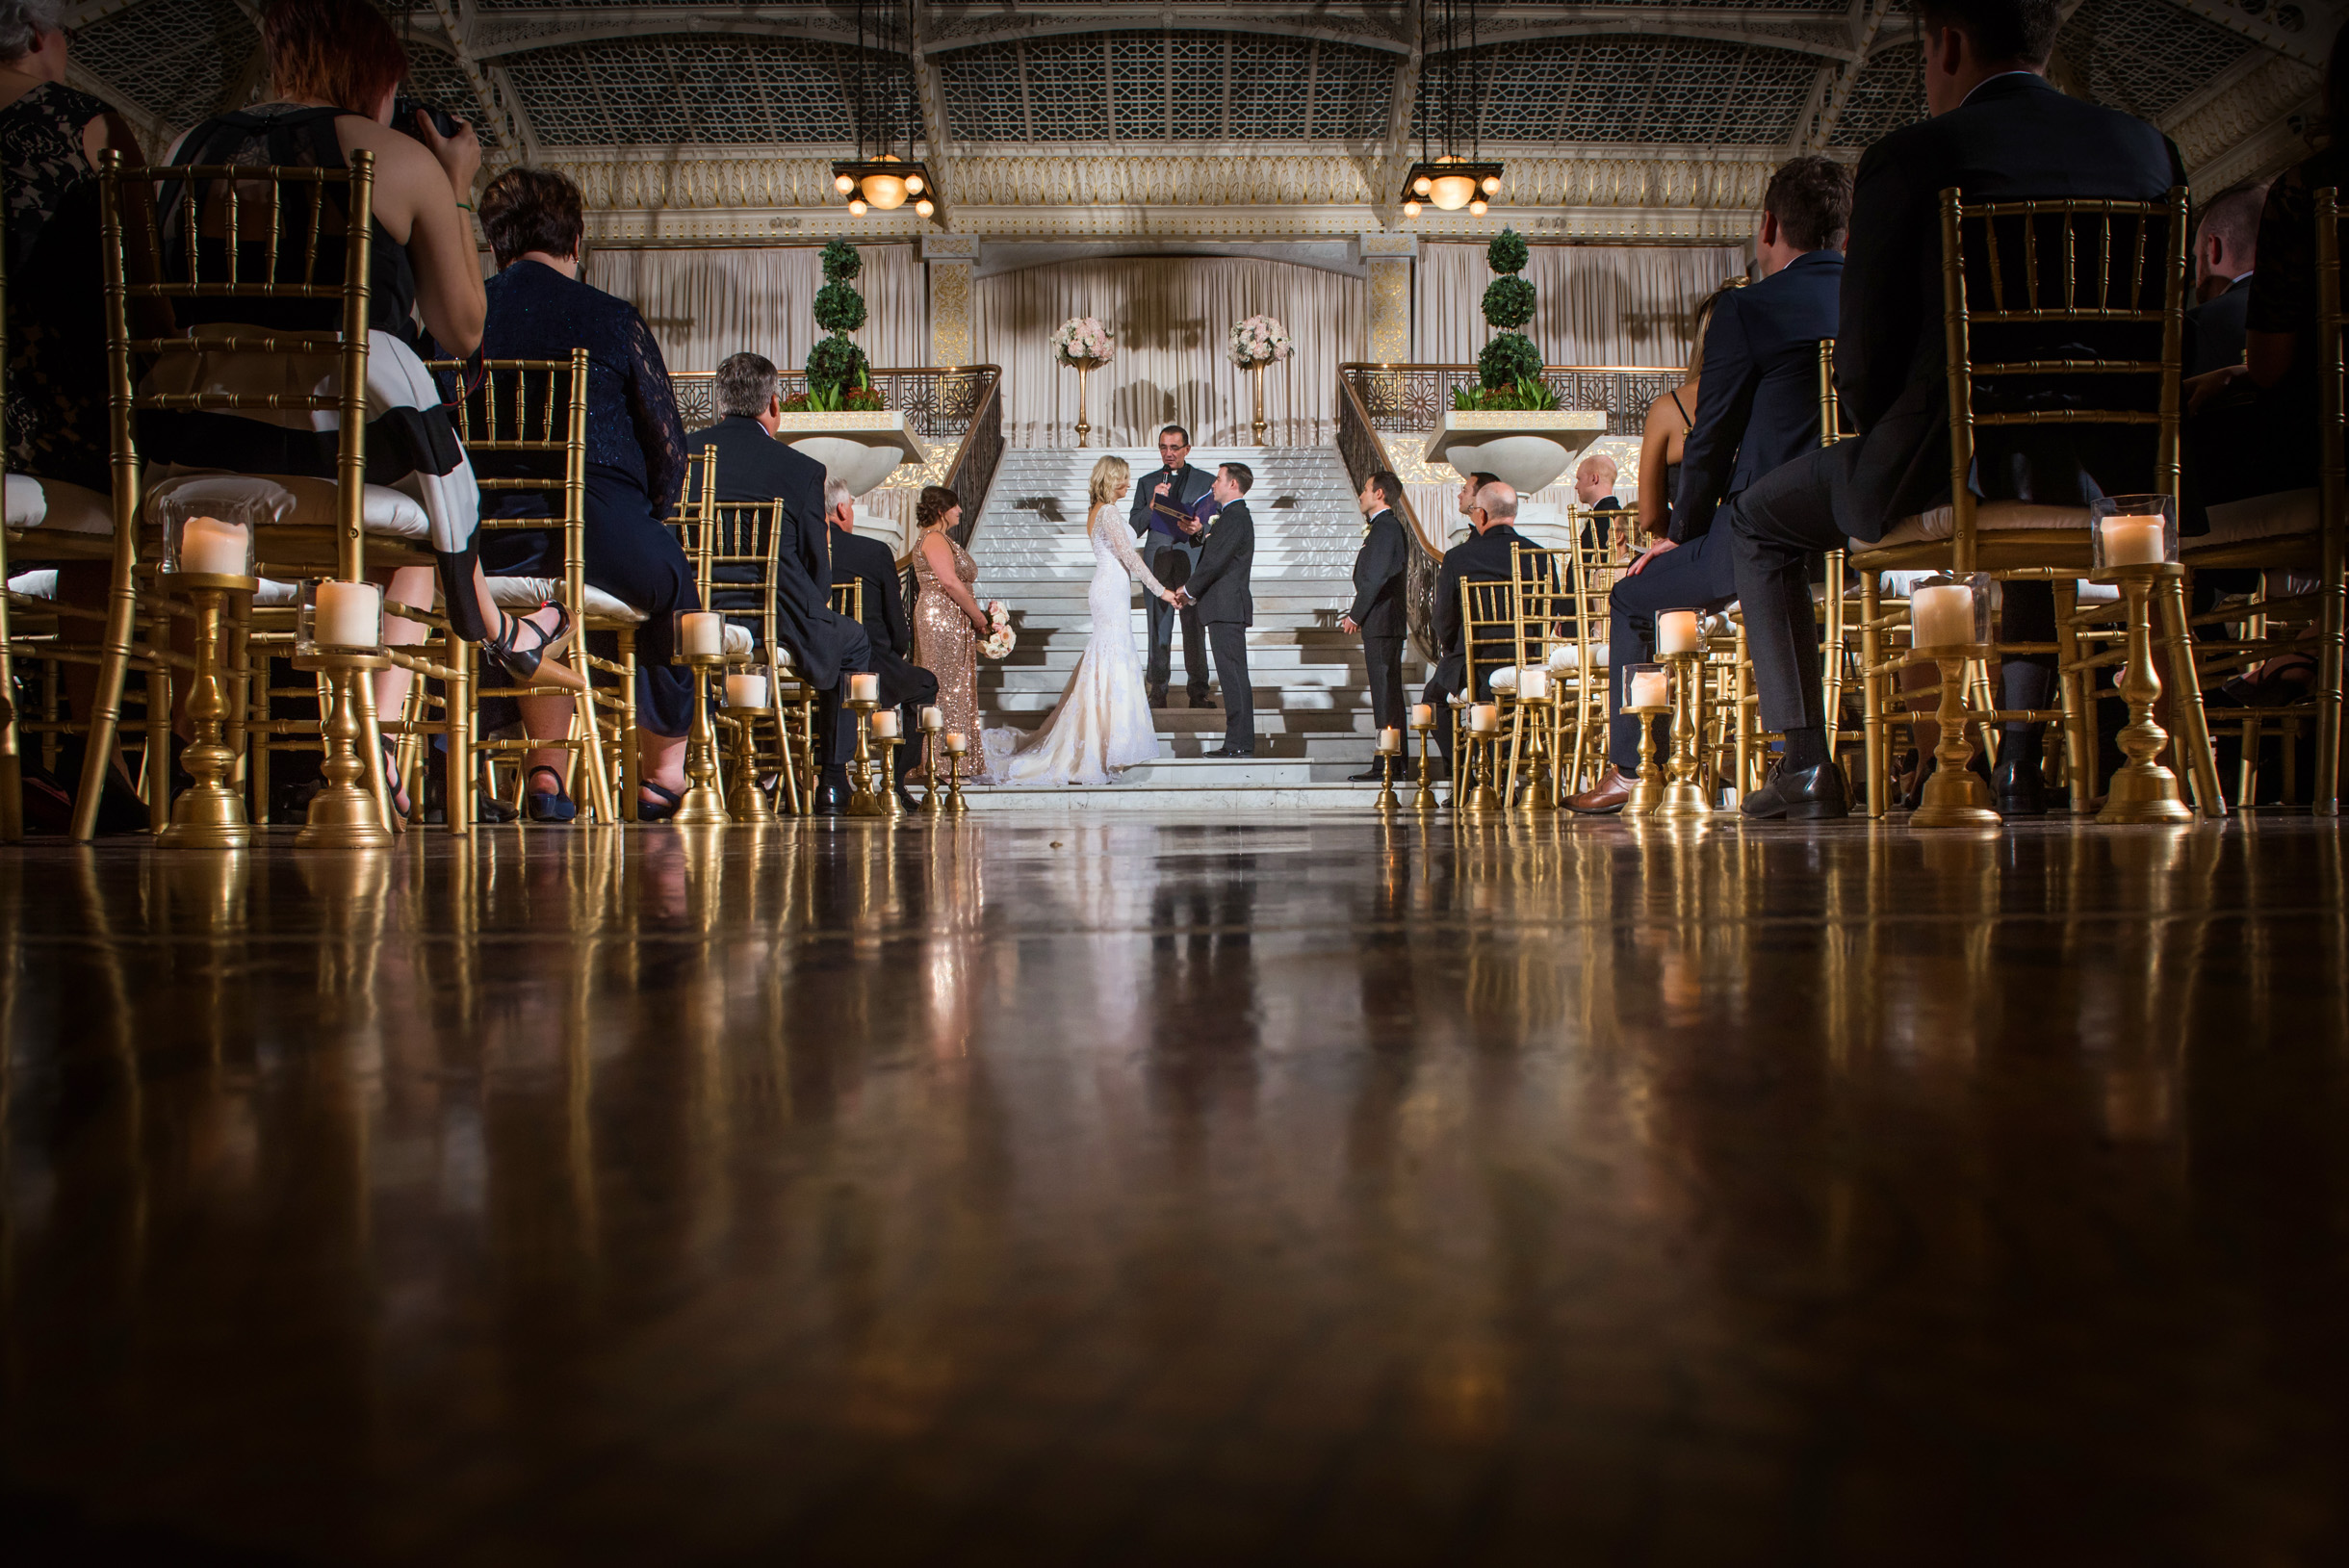 Bride and groom exchange vows on staircase at Rookery in Chicago